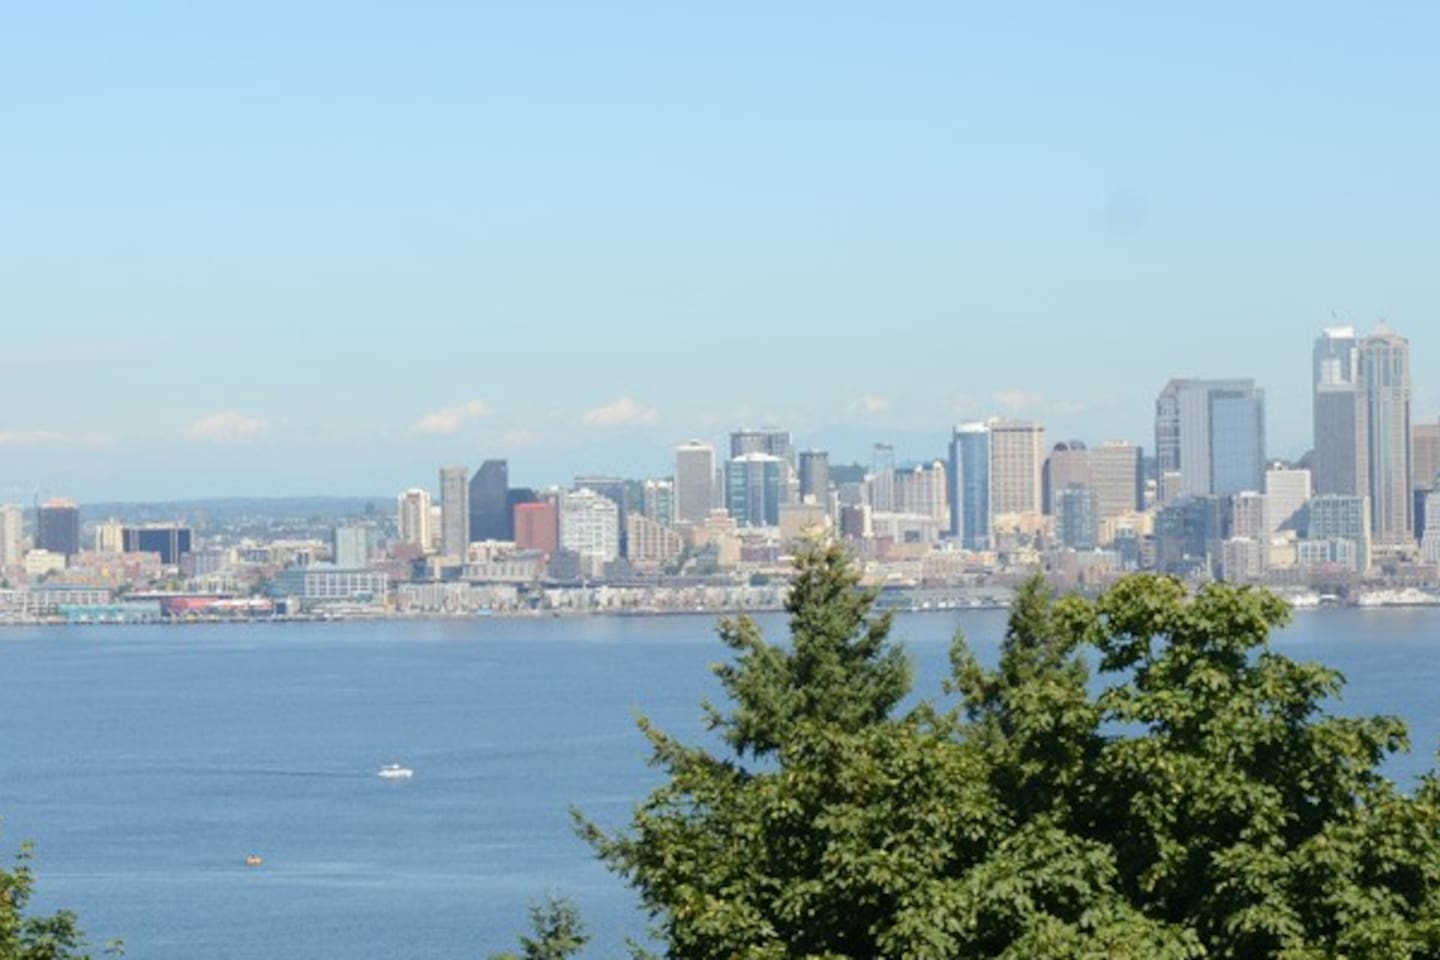 Come stay in West Seattle's Admiral District- this is the view just blocks away.  Everything you need you can walk to...this is city living! First floor walk up- NYC style older building- quaint cute and perfect studio for your visit to Seattle!